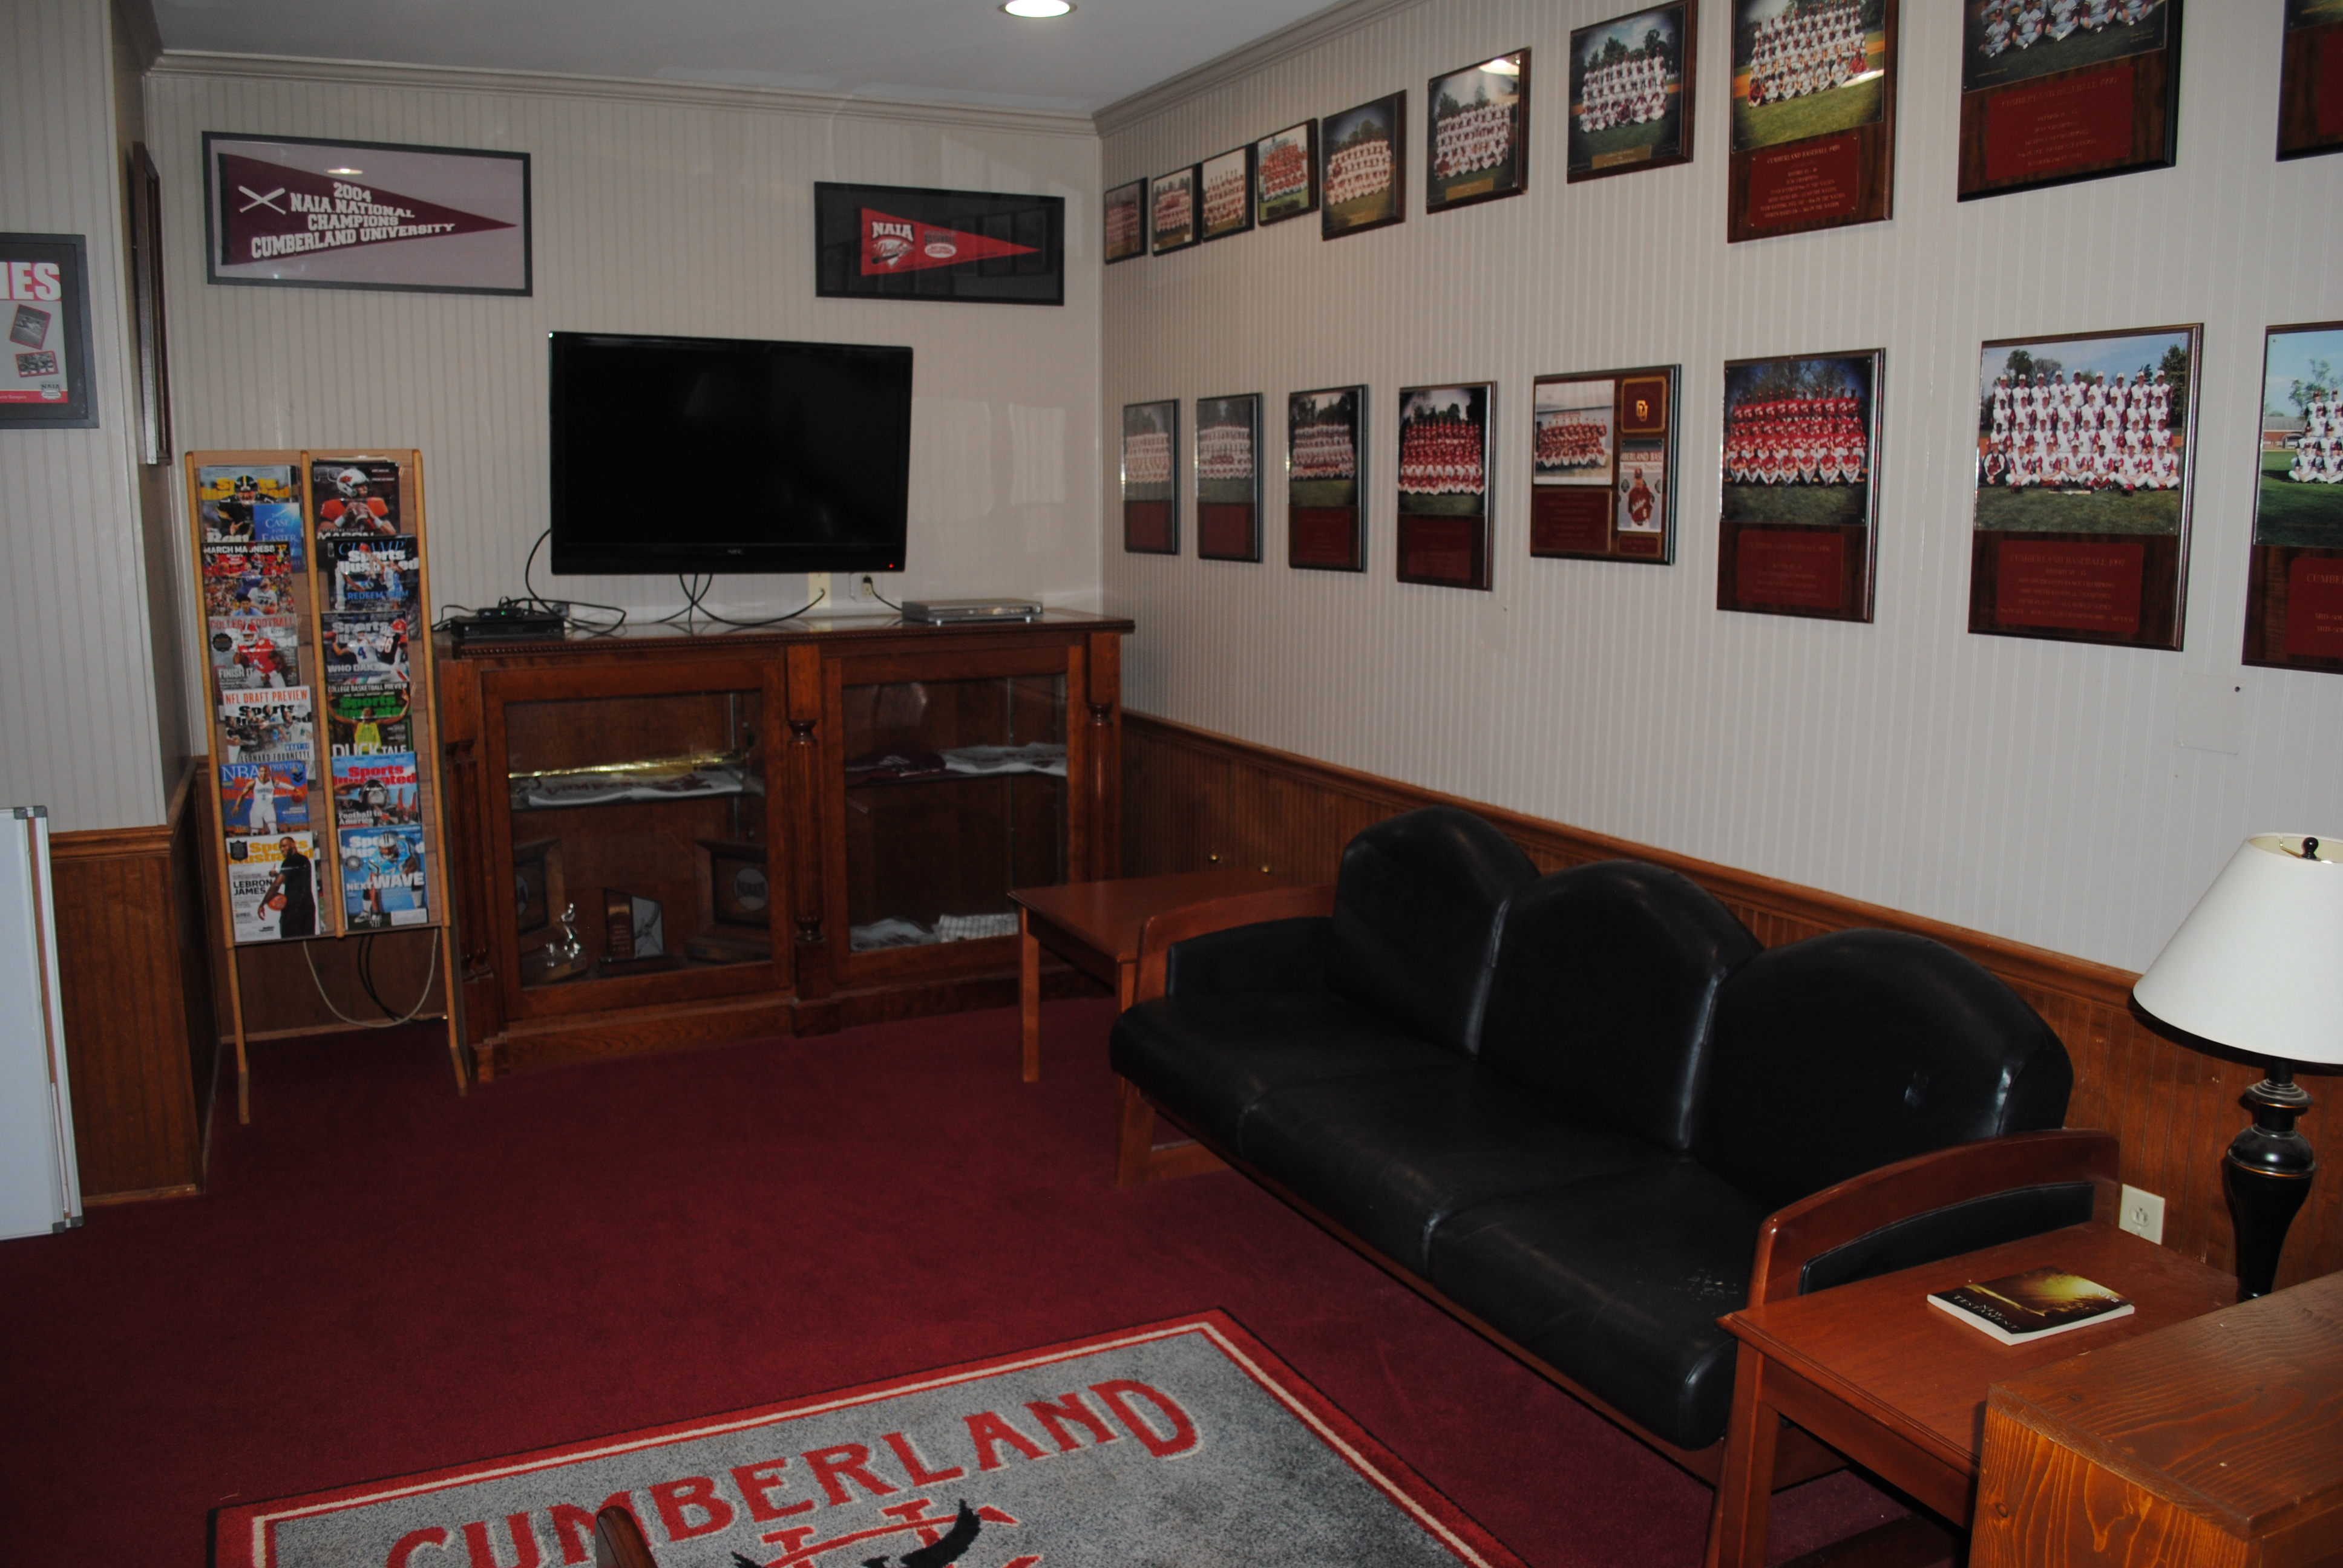 Jeanette C. Rudy Clubhouse Picture 3